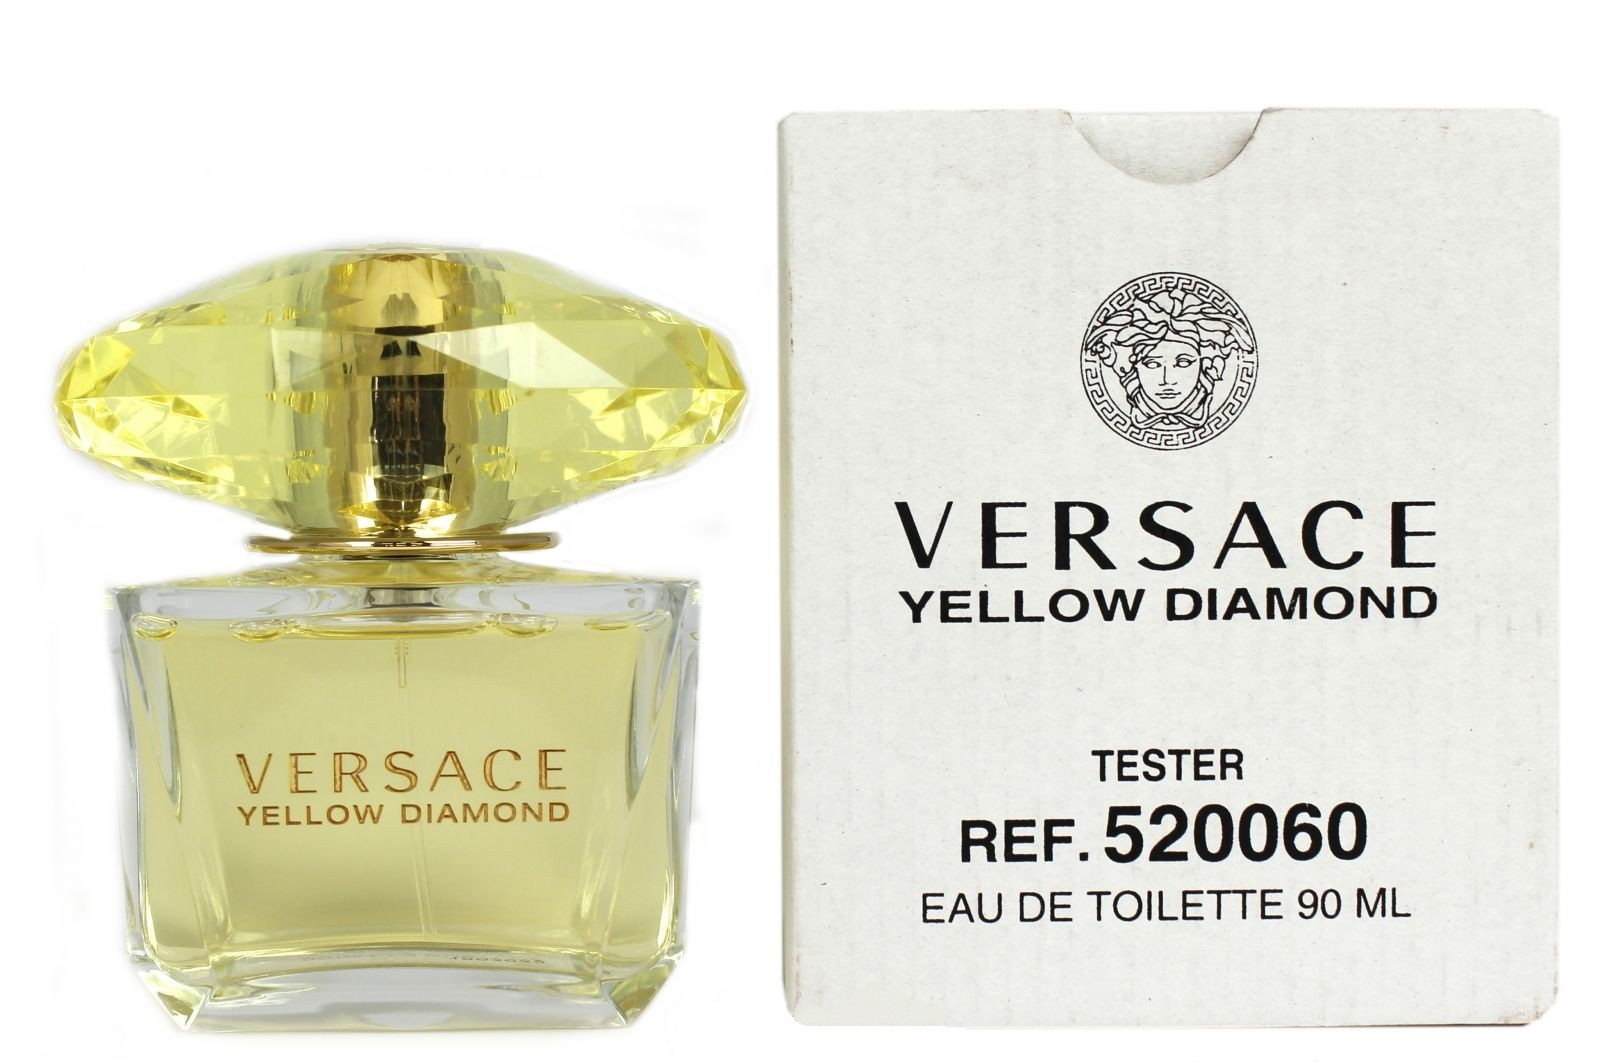 Versace Yellow Diamond 90мл EDT - ТЕСТЕР за жени